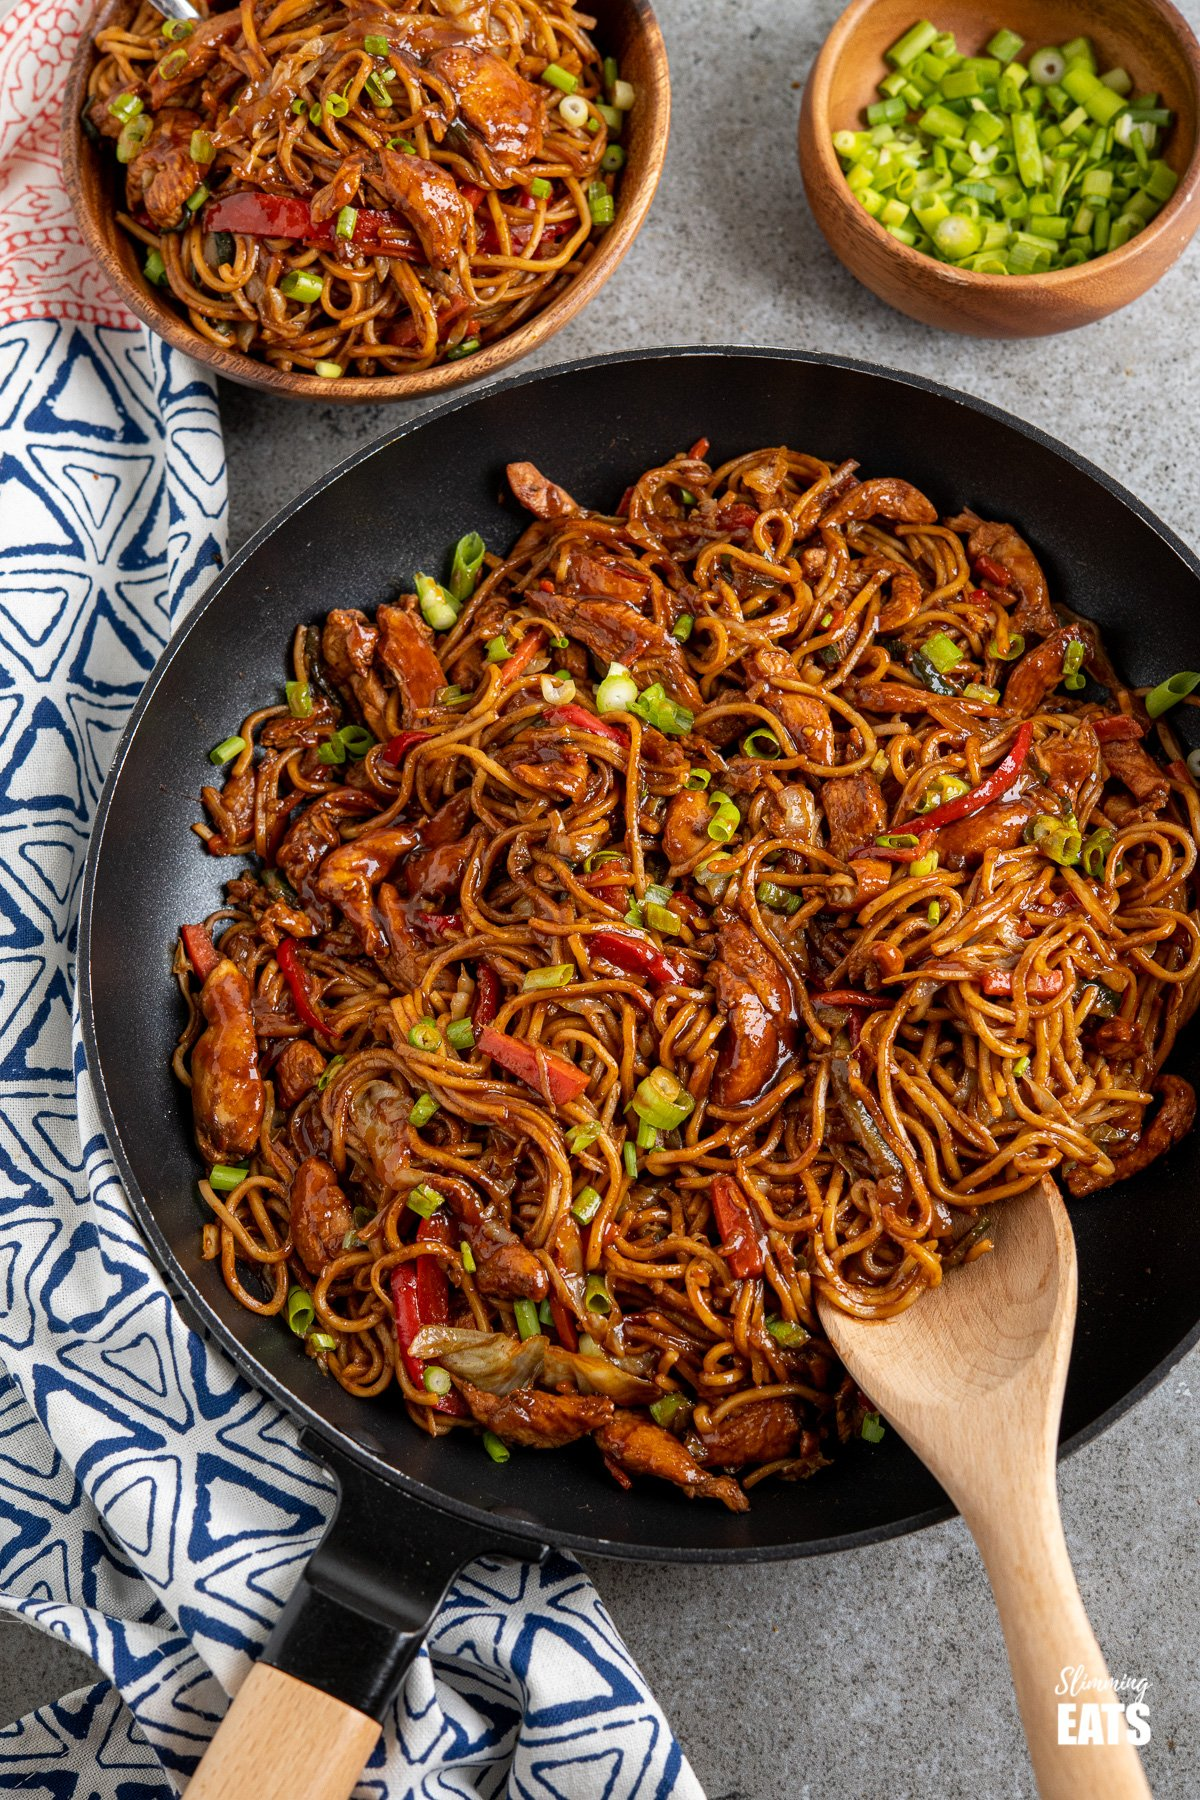 Hoisin chicken noodles in black frying pan with wooden handle, bowl of noodles and spring onions in background